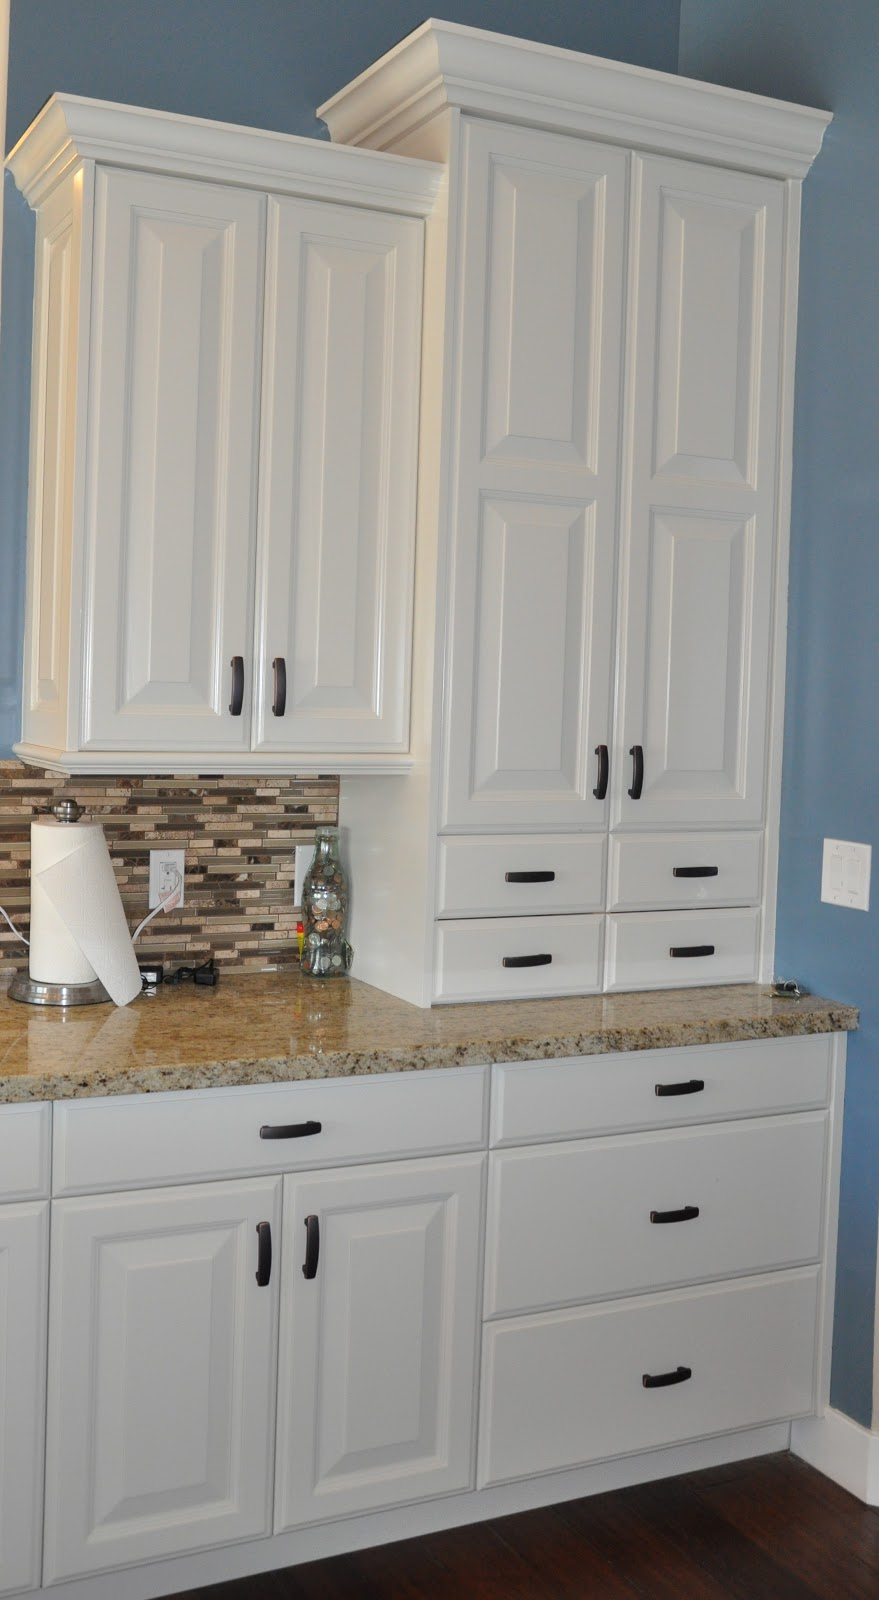 Stone Ridge Cabinets: Kitchen Cabinets: Off-White with ...